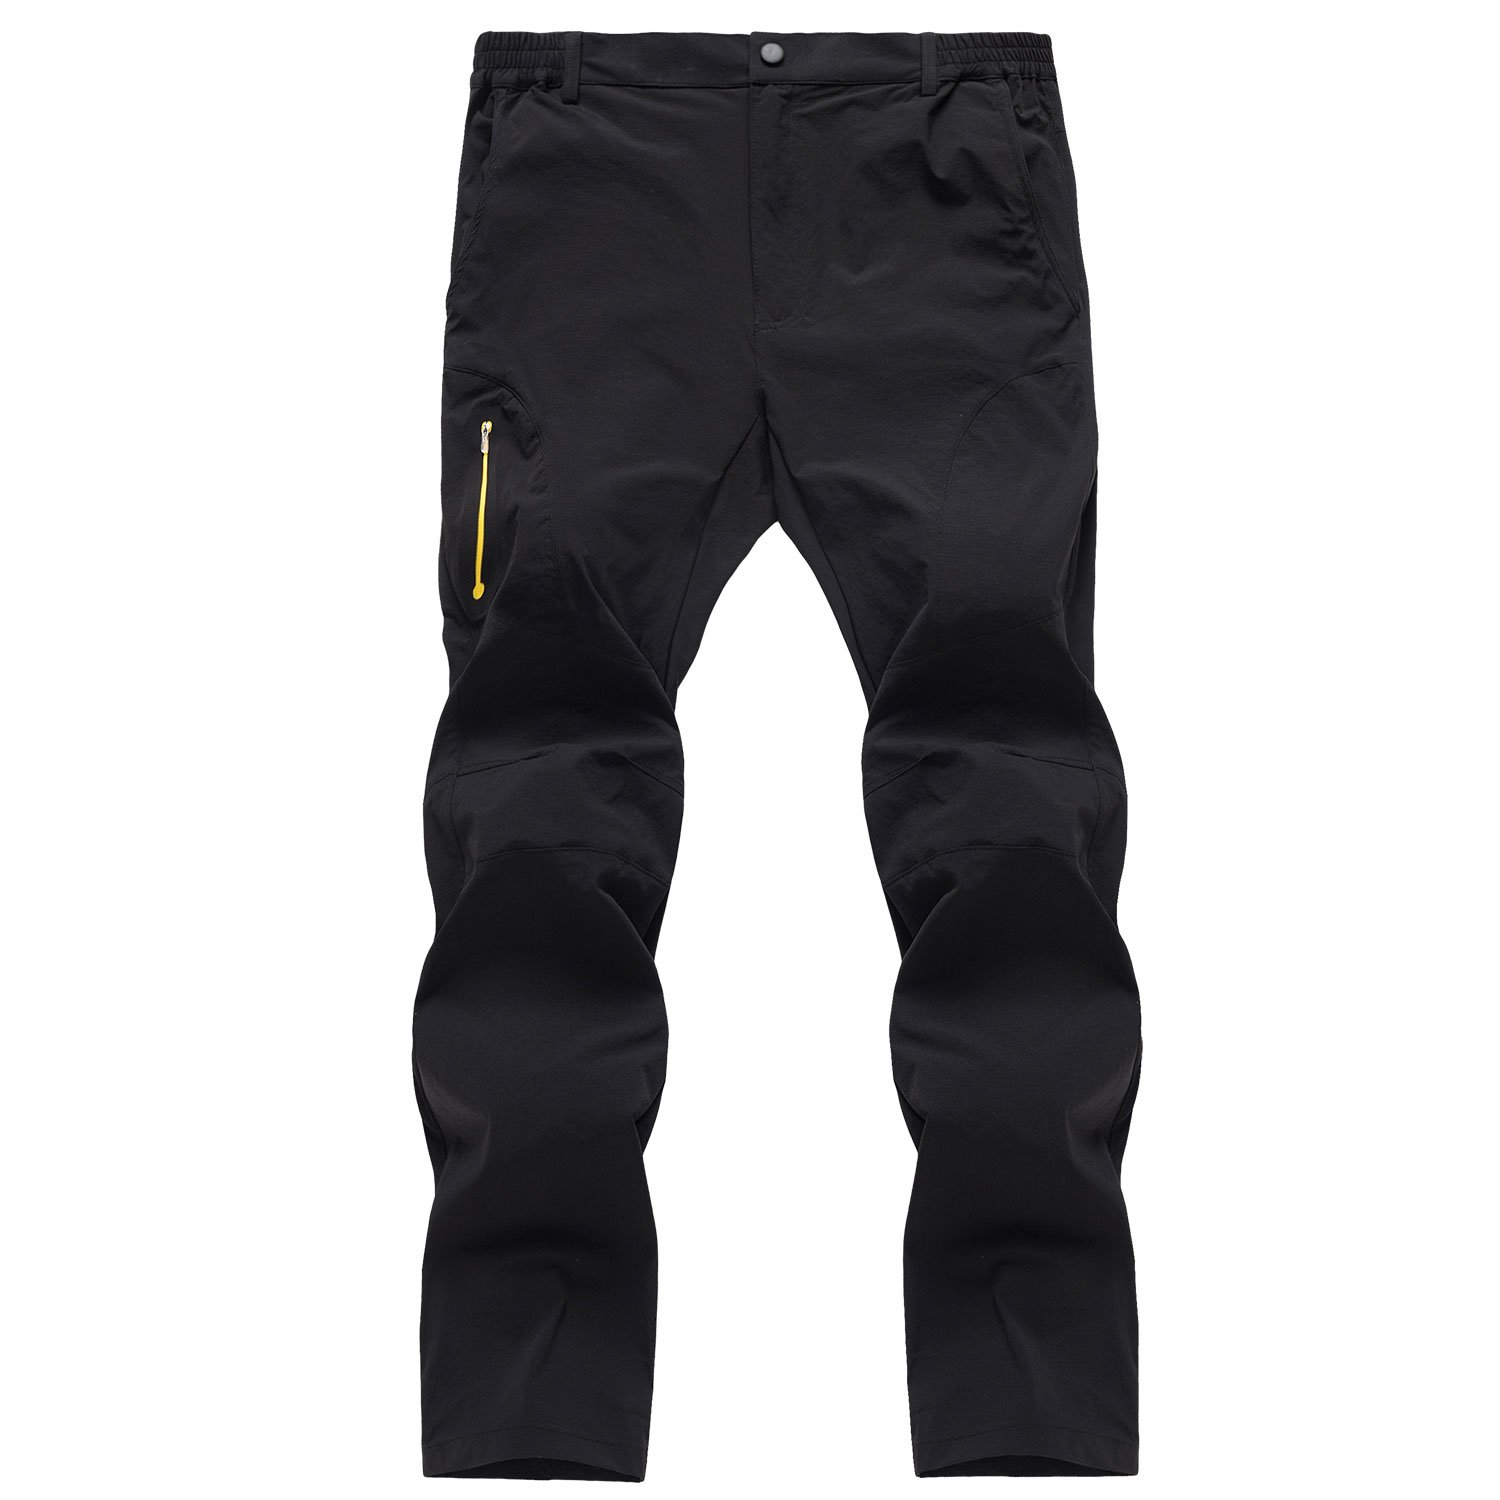 Naudamp Mens Casual Quick-dry Hiking Pants Water Resistant Walking Athletics Trousers